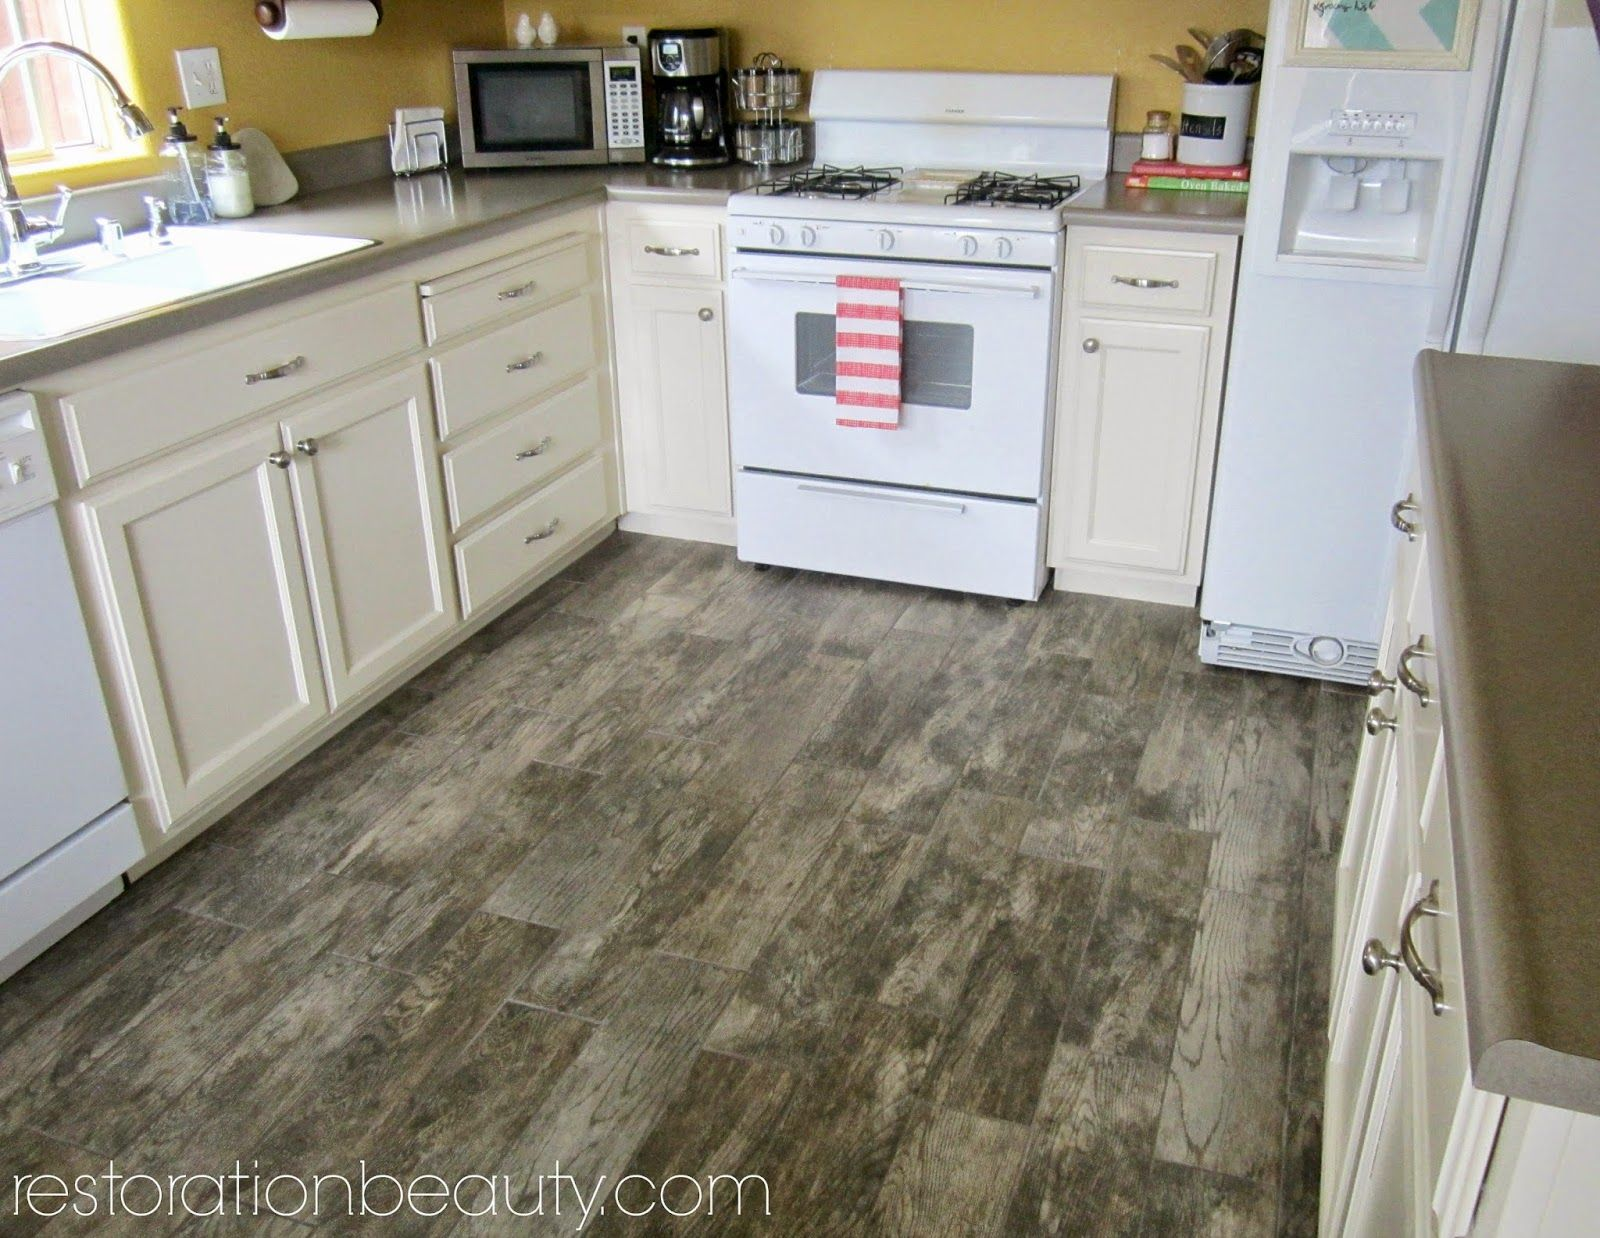 Faux wood tile flooring in the kitchen faux wood tiles wood tile faux wood tile flooring in the kitchen dailygadgetfo Gallery